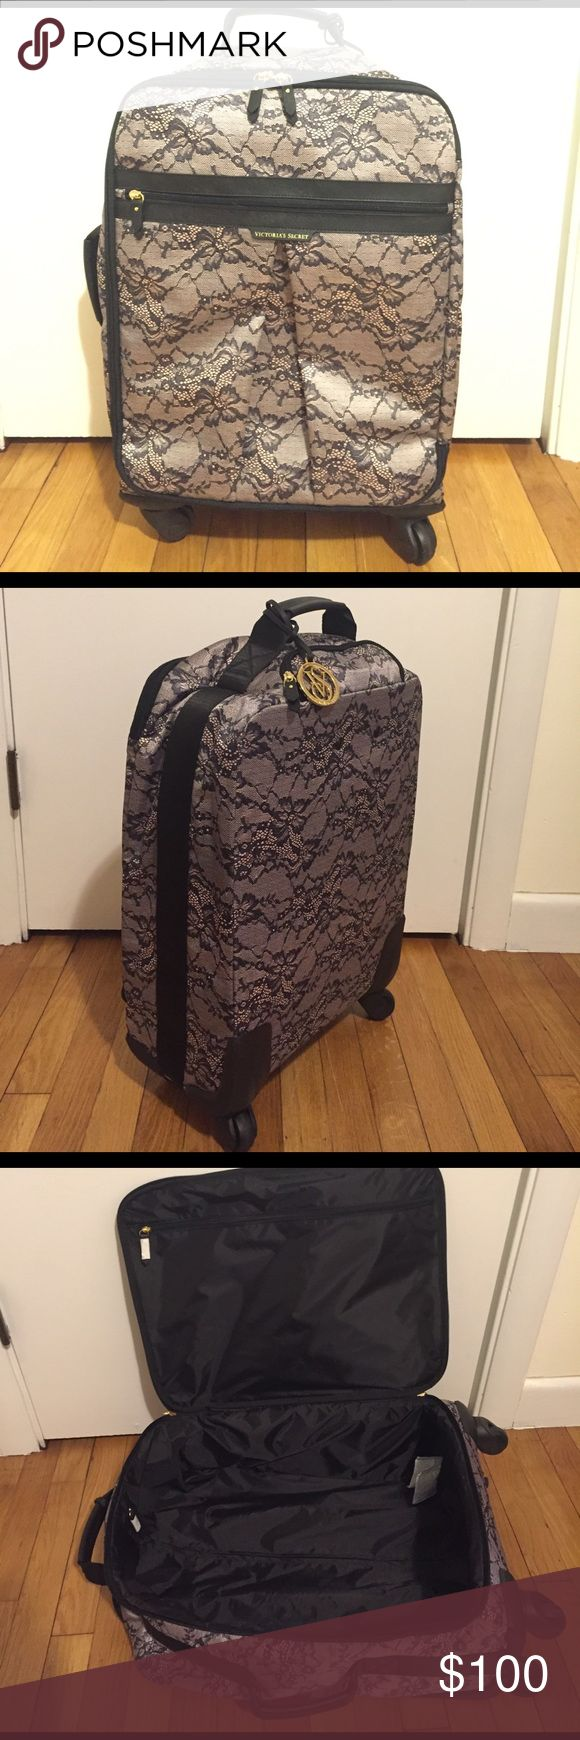 Victoria's Secret Rolling Luggage Lace print Victoria's Secret Rolling Luggage. Brand new only used once! Perfect small carry on, just doesn't suit my needs.         20H x 14W x 10D Victoria's Secret Bags Travel Bags